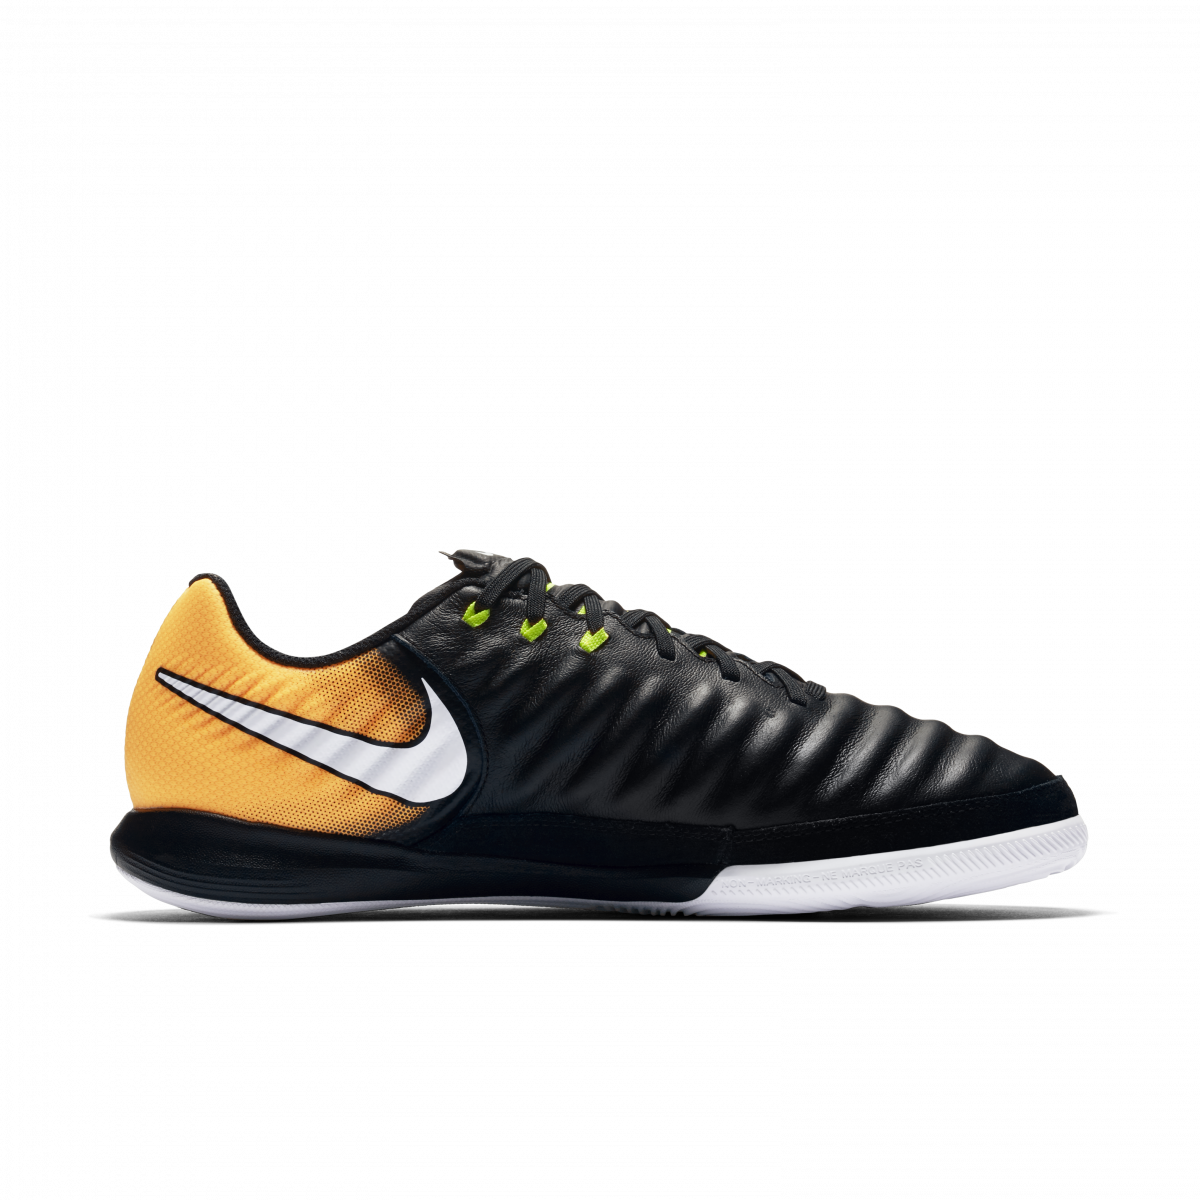 nike football announce the new tiempo legend 7 shoot. Black Bedroom Furniture Sets. Home Design Ideas